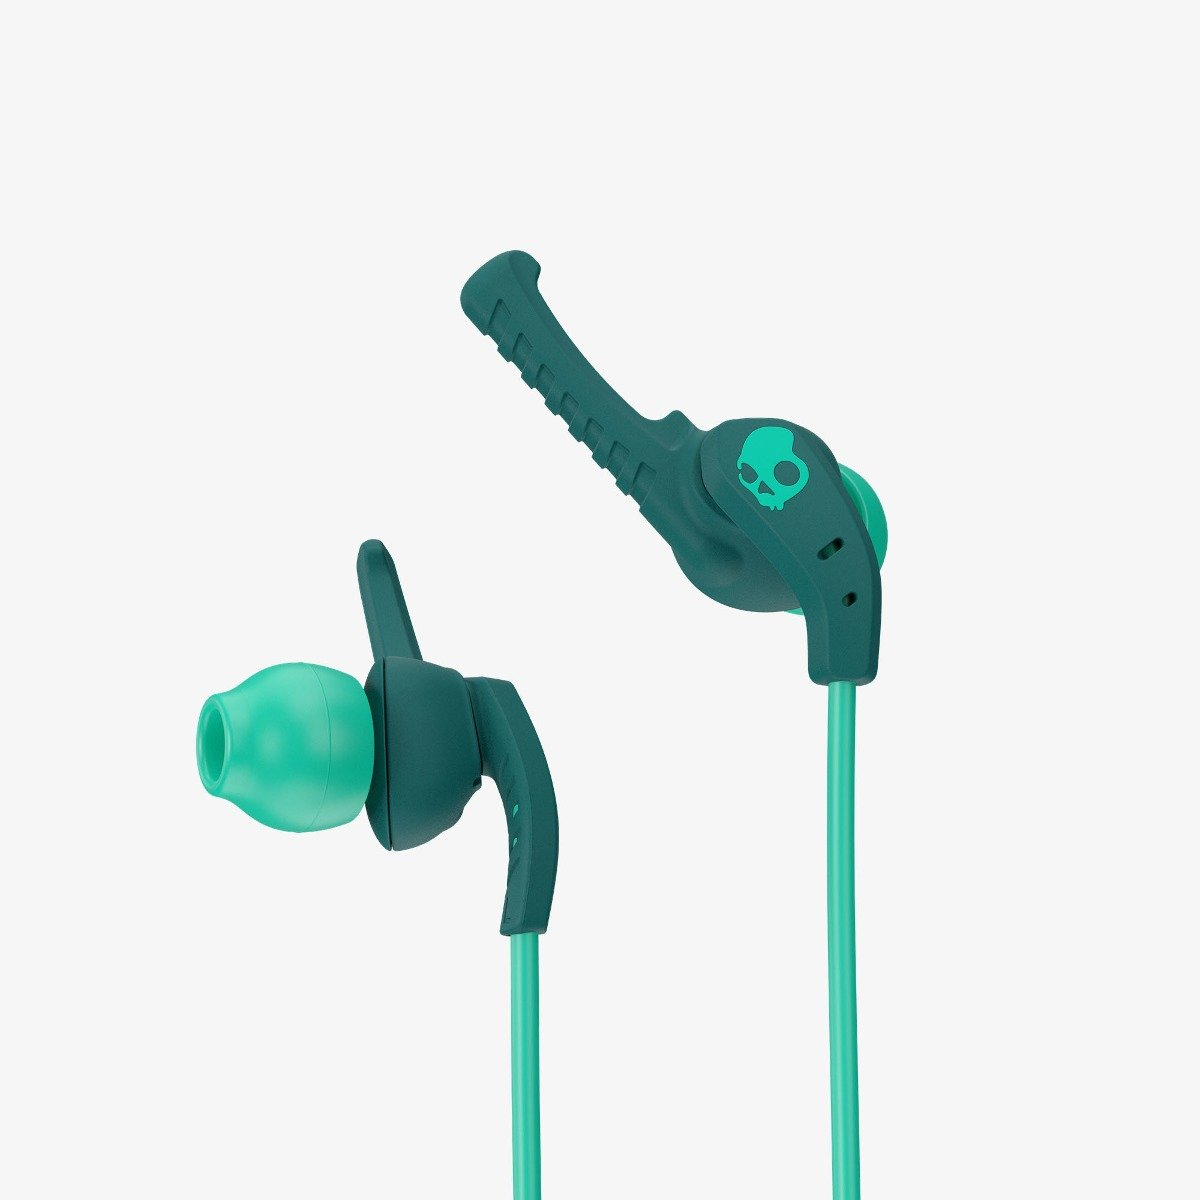 Solonic Wired Earbuds HiFi Stereo Earphones with Mic Volume Control, Tangle-Free, Noise Isolation for Devices with 3.275mm Jack Upgraded Drive Units